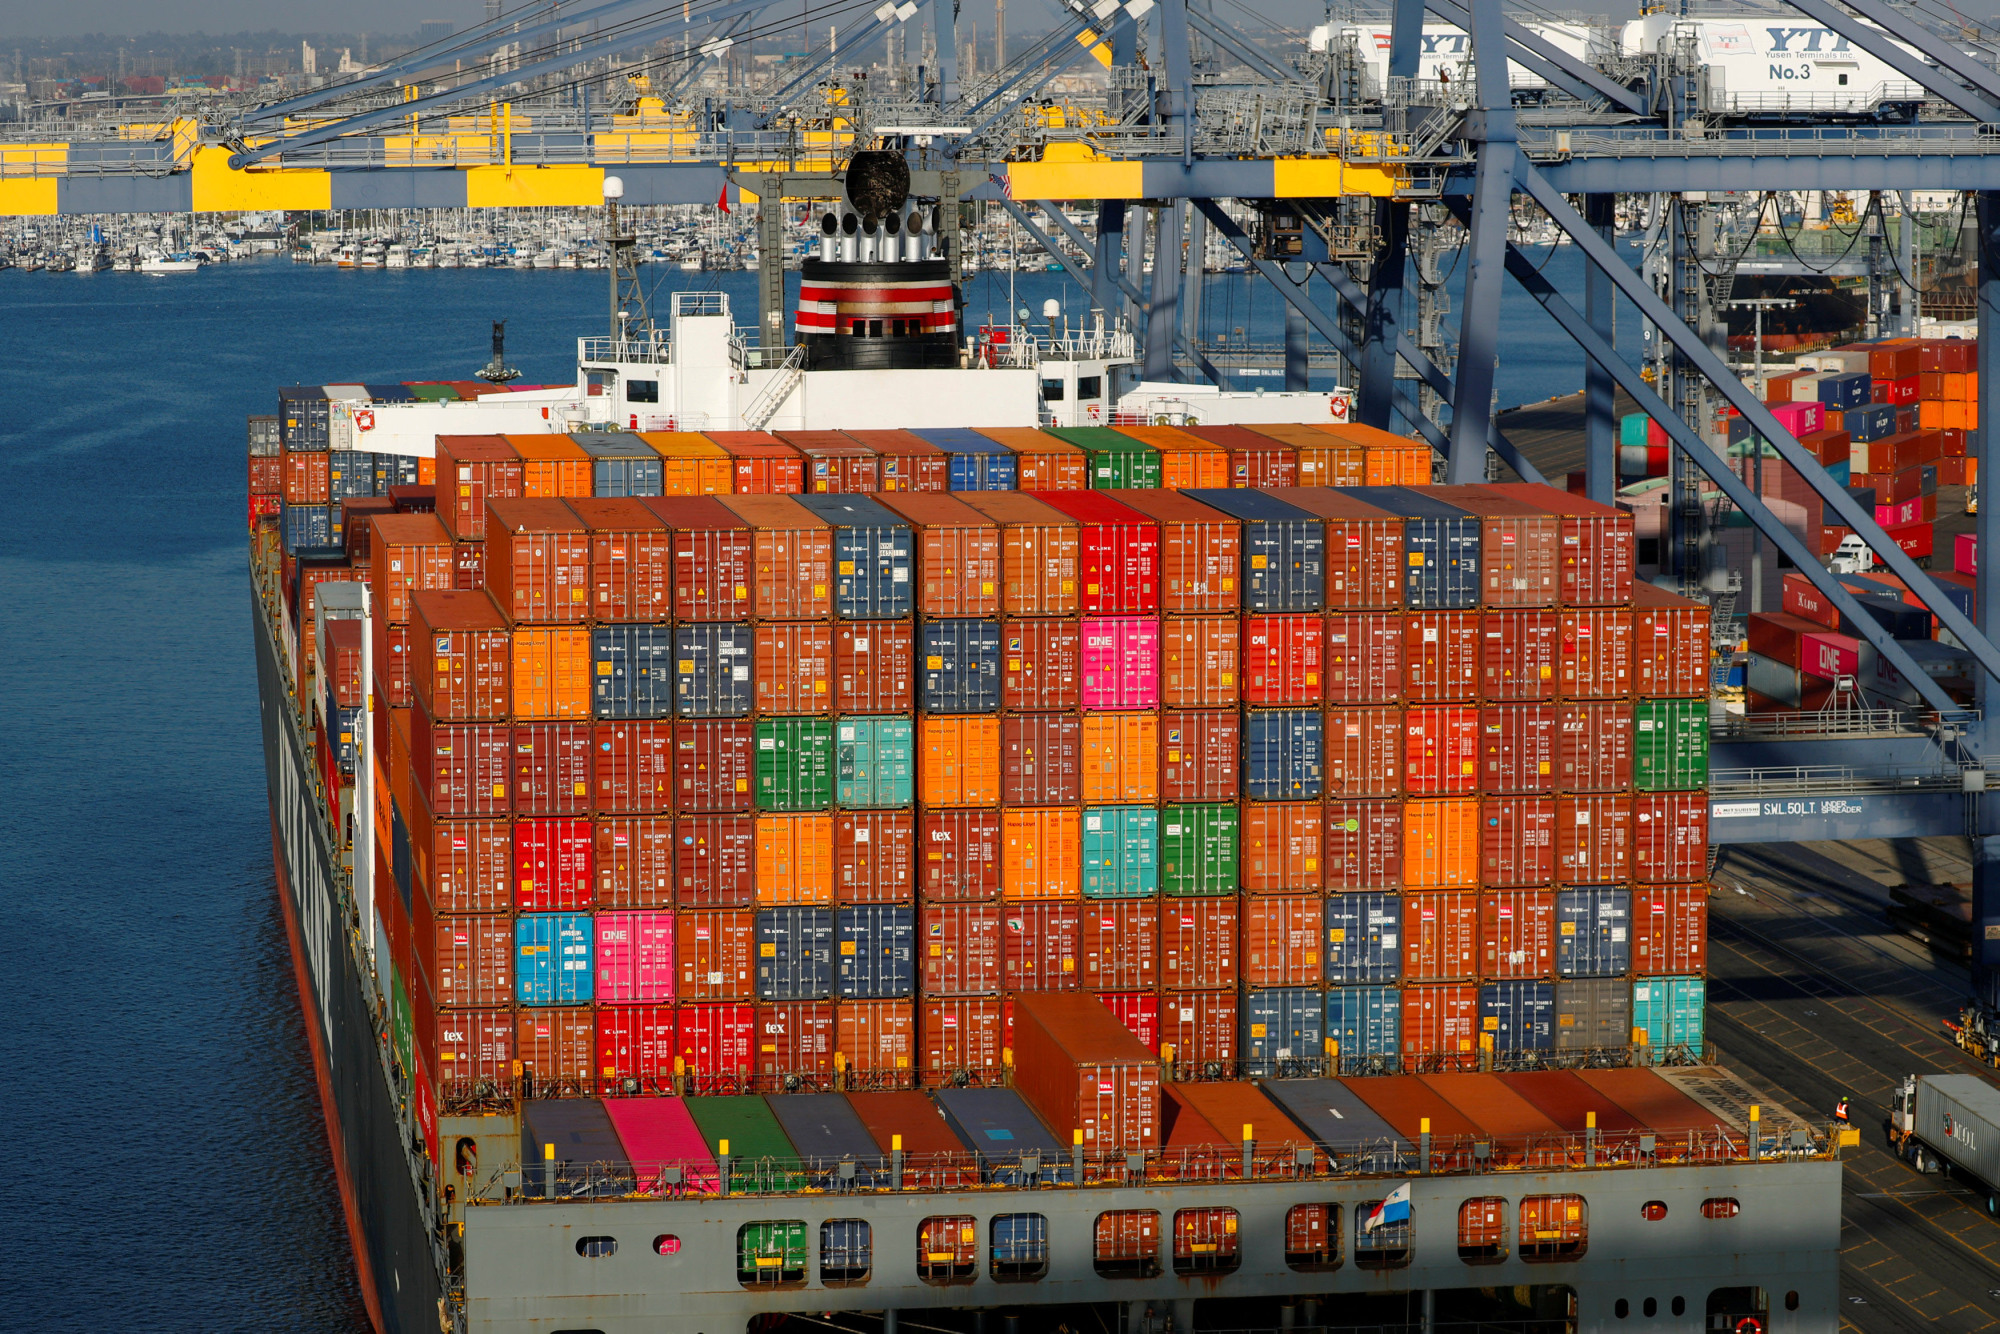 Shipping containers are seen stacked on ships at the Port of Los Angeles on Jan. 30. The U.S. trade deficit has soared since 2016. | REUTERS